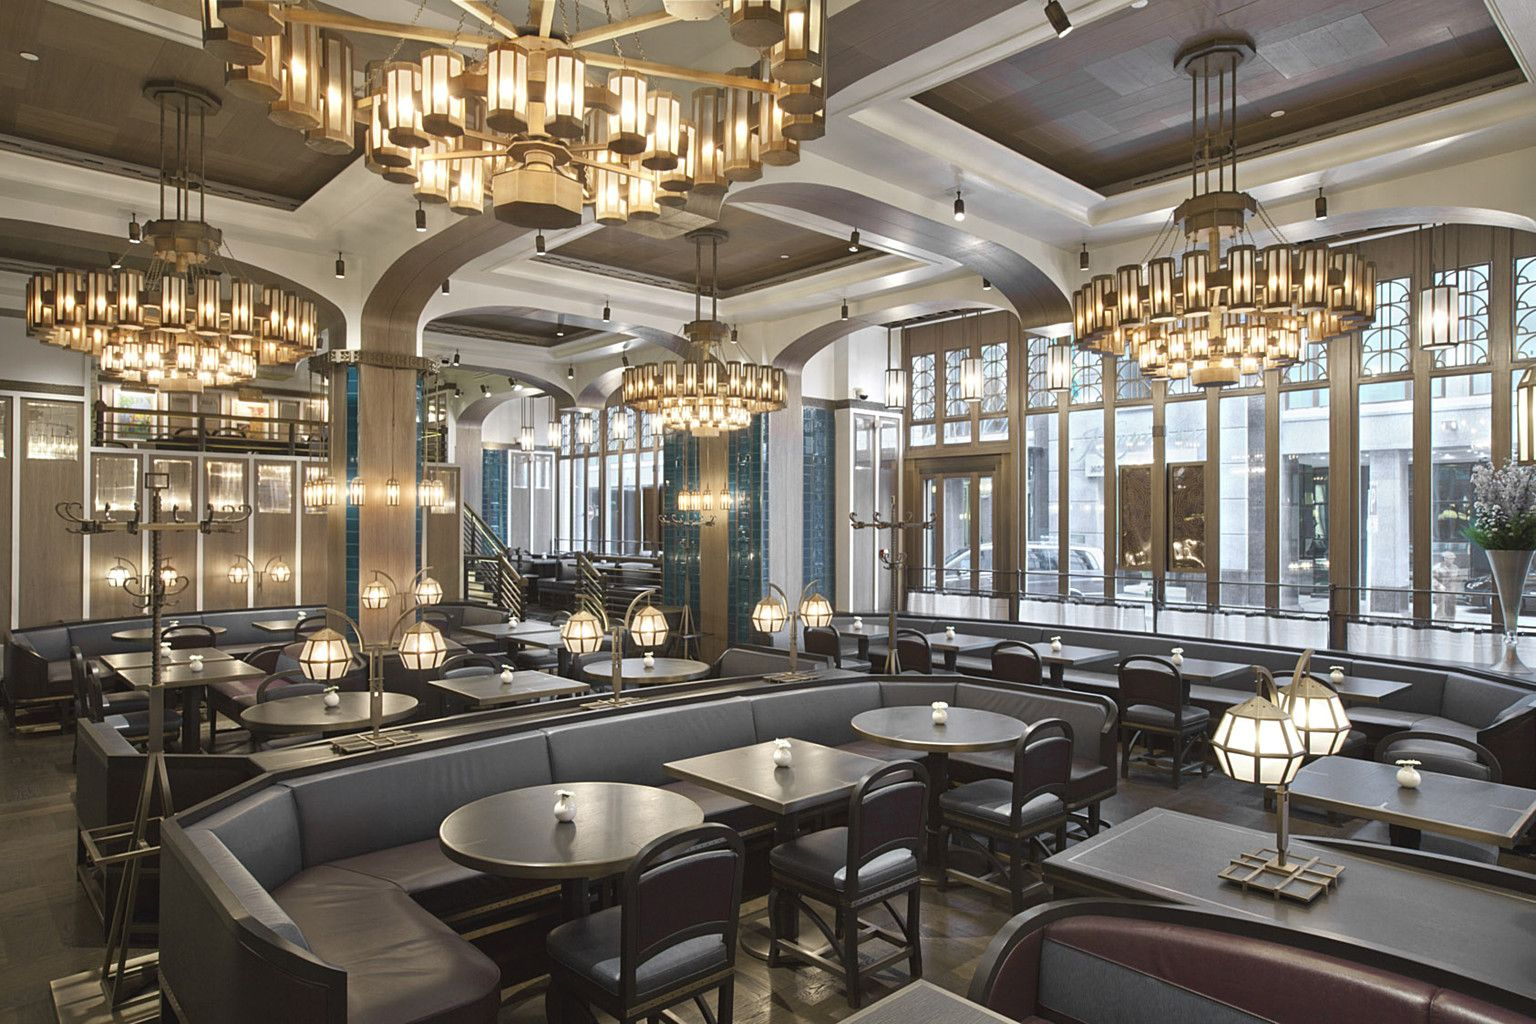 1000+ images about new classic moderate chic hotel restaurant ...